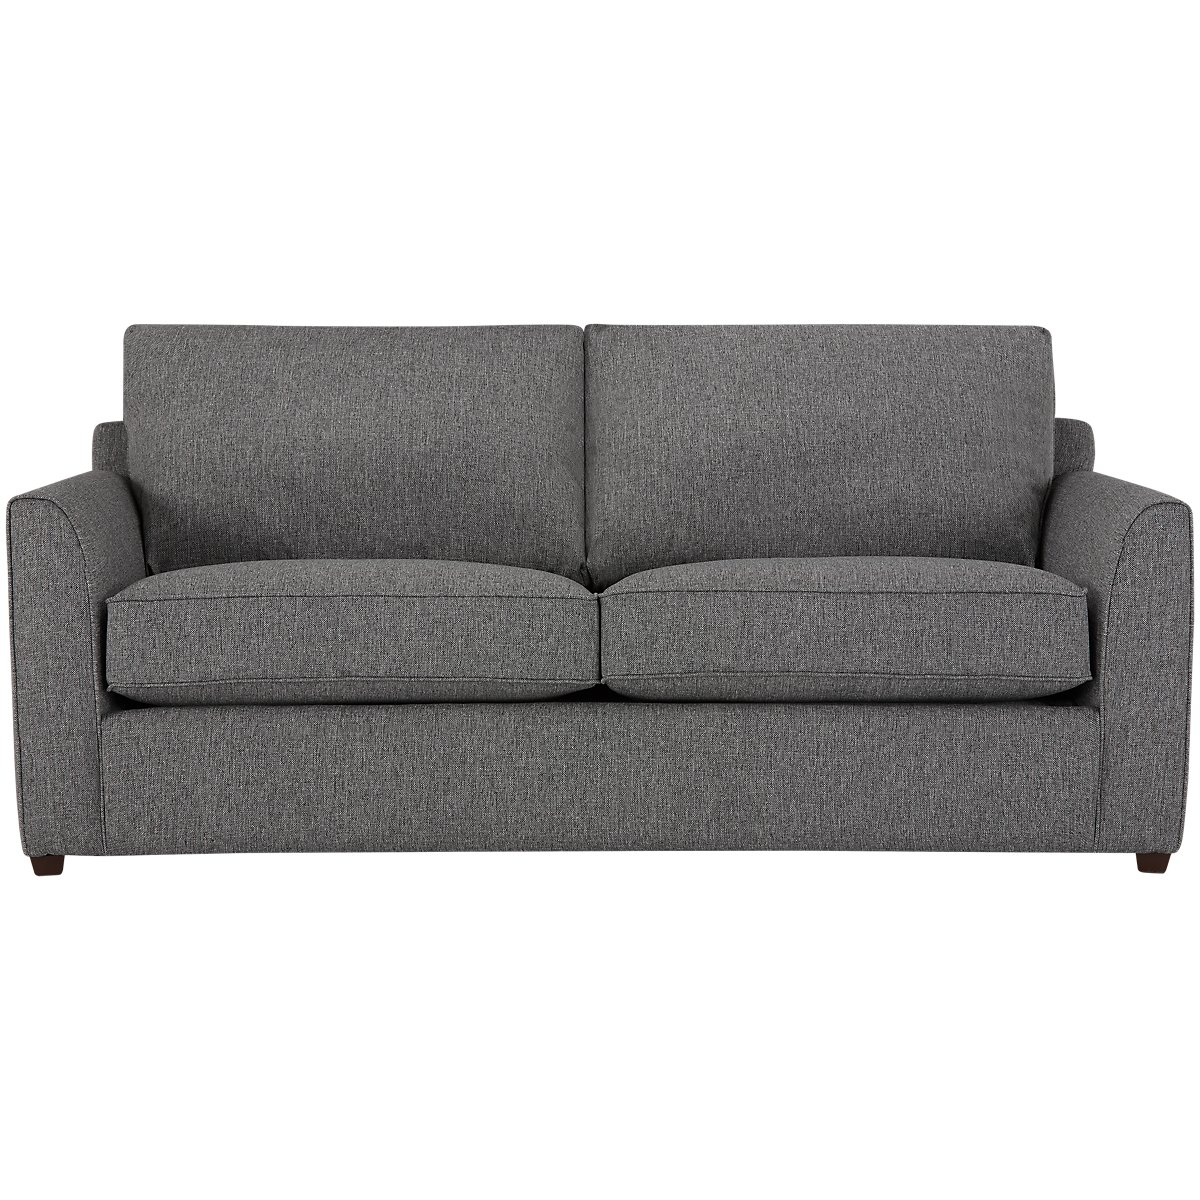 City Furniture Asheville Gray Fabric Sofa